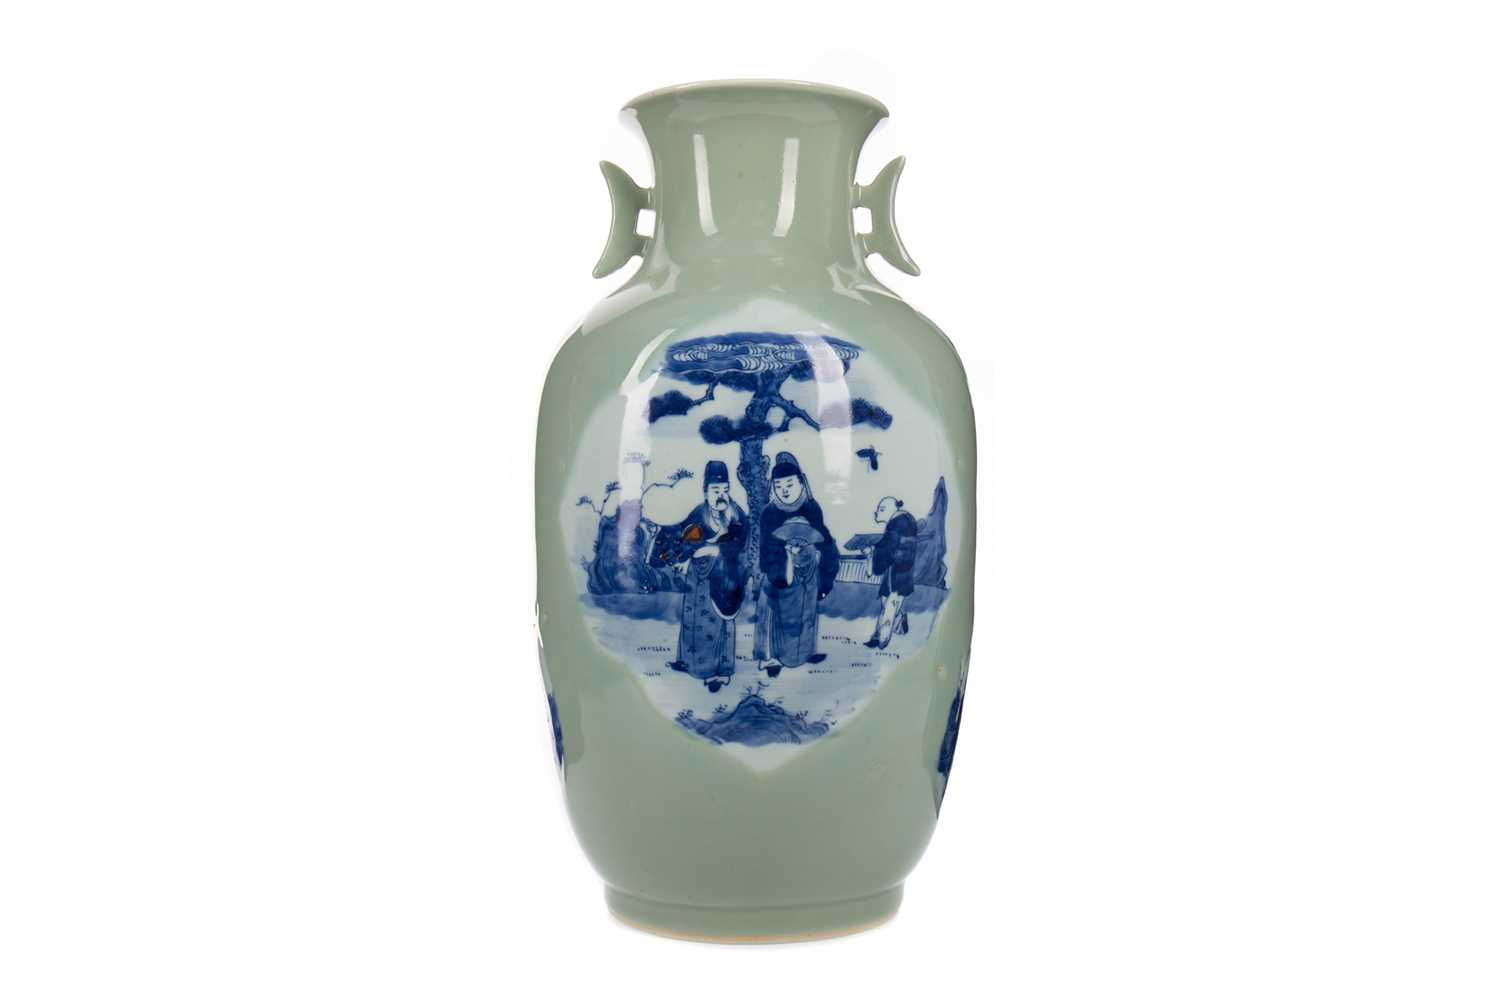 Lot 1604 - A 20TH CENTURY CHINESE CELADON VASE